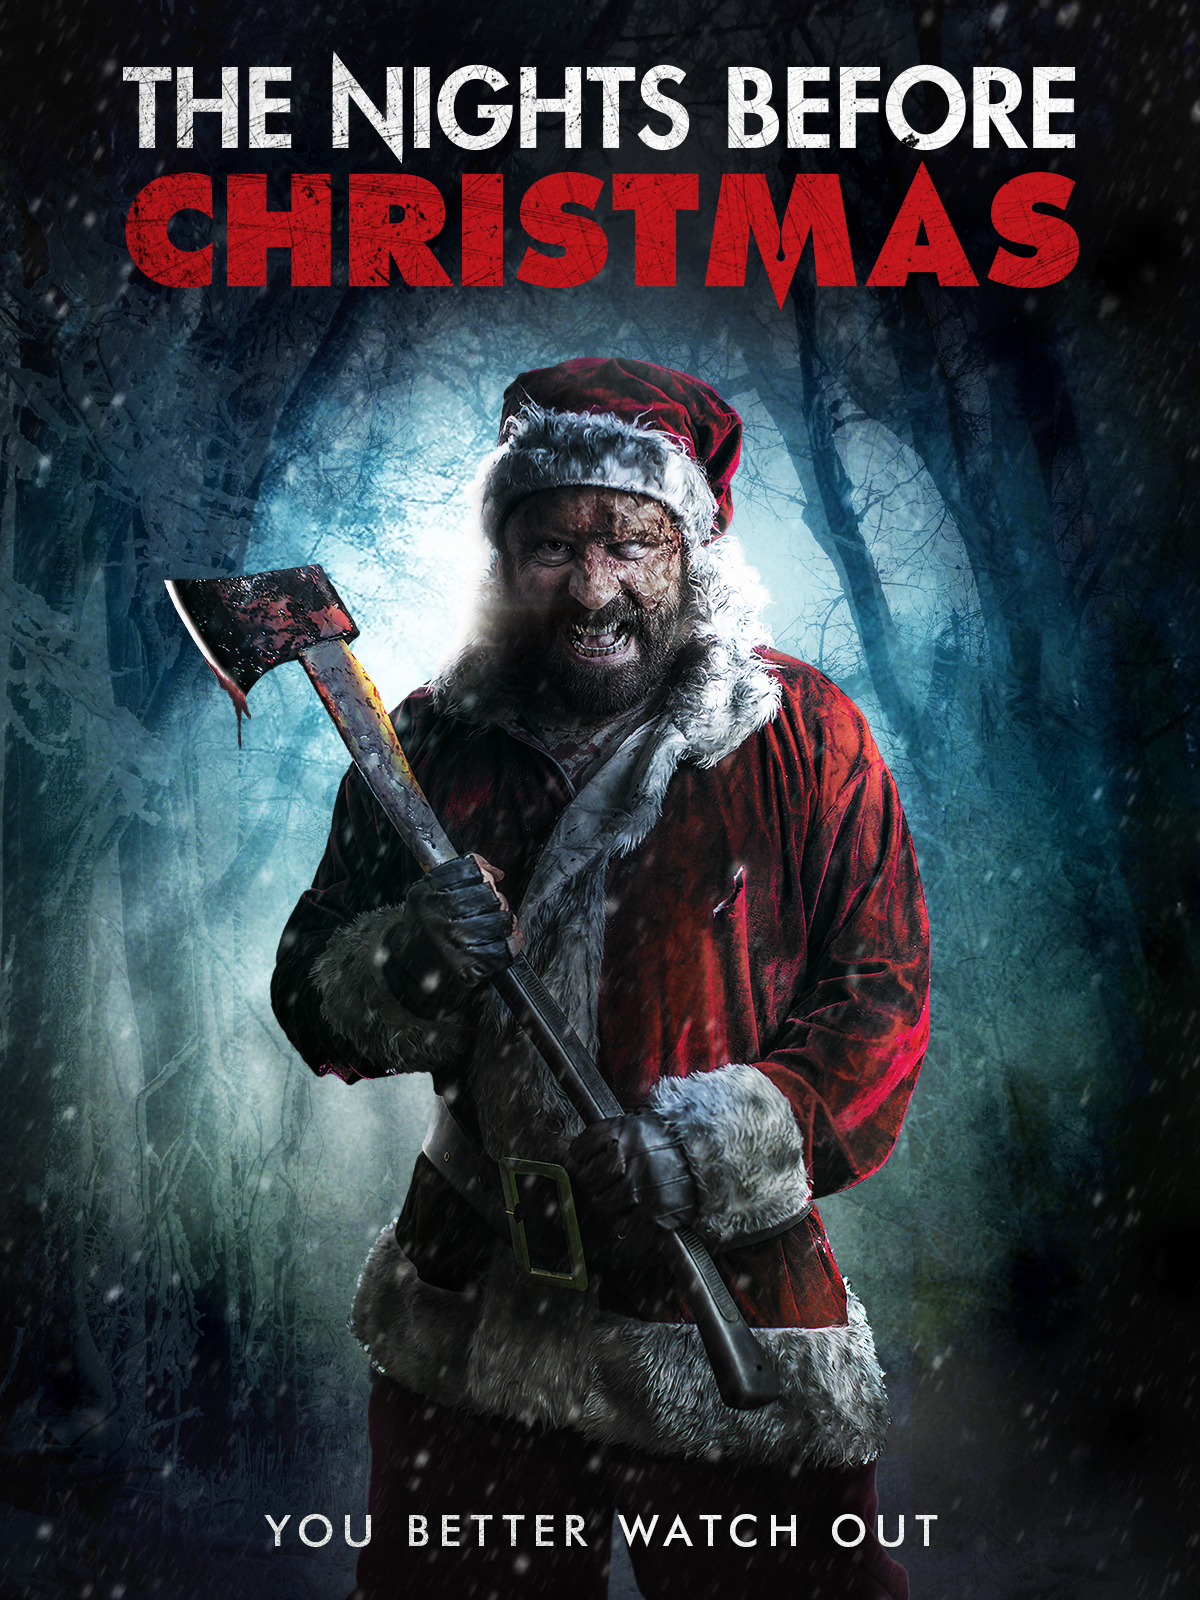 THE NIGHTS BEFORE CHRISTMAS  Playing at FrightFest 2020  POSTER AND TRAILER RELEASED